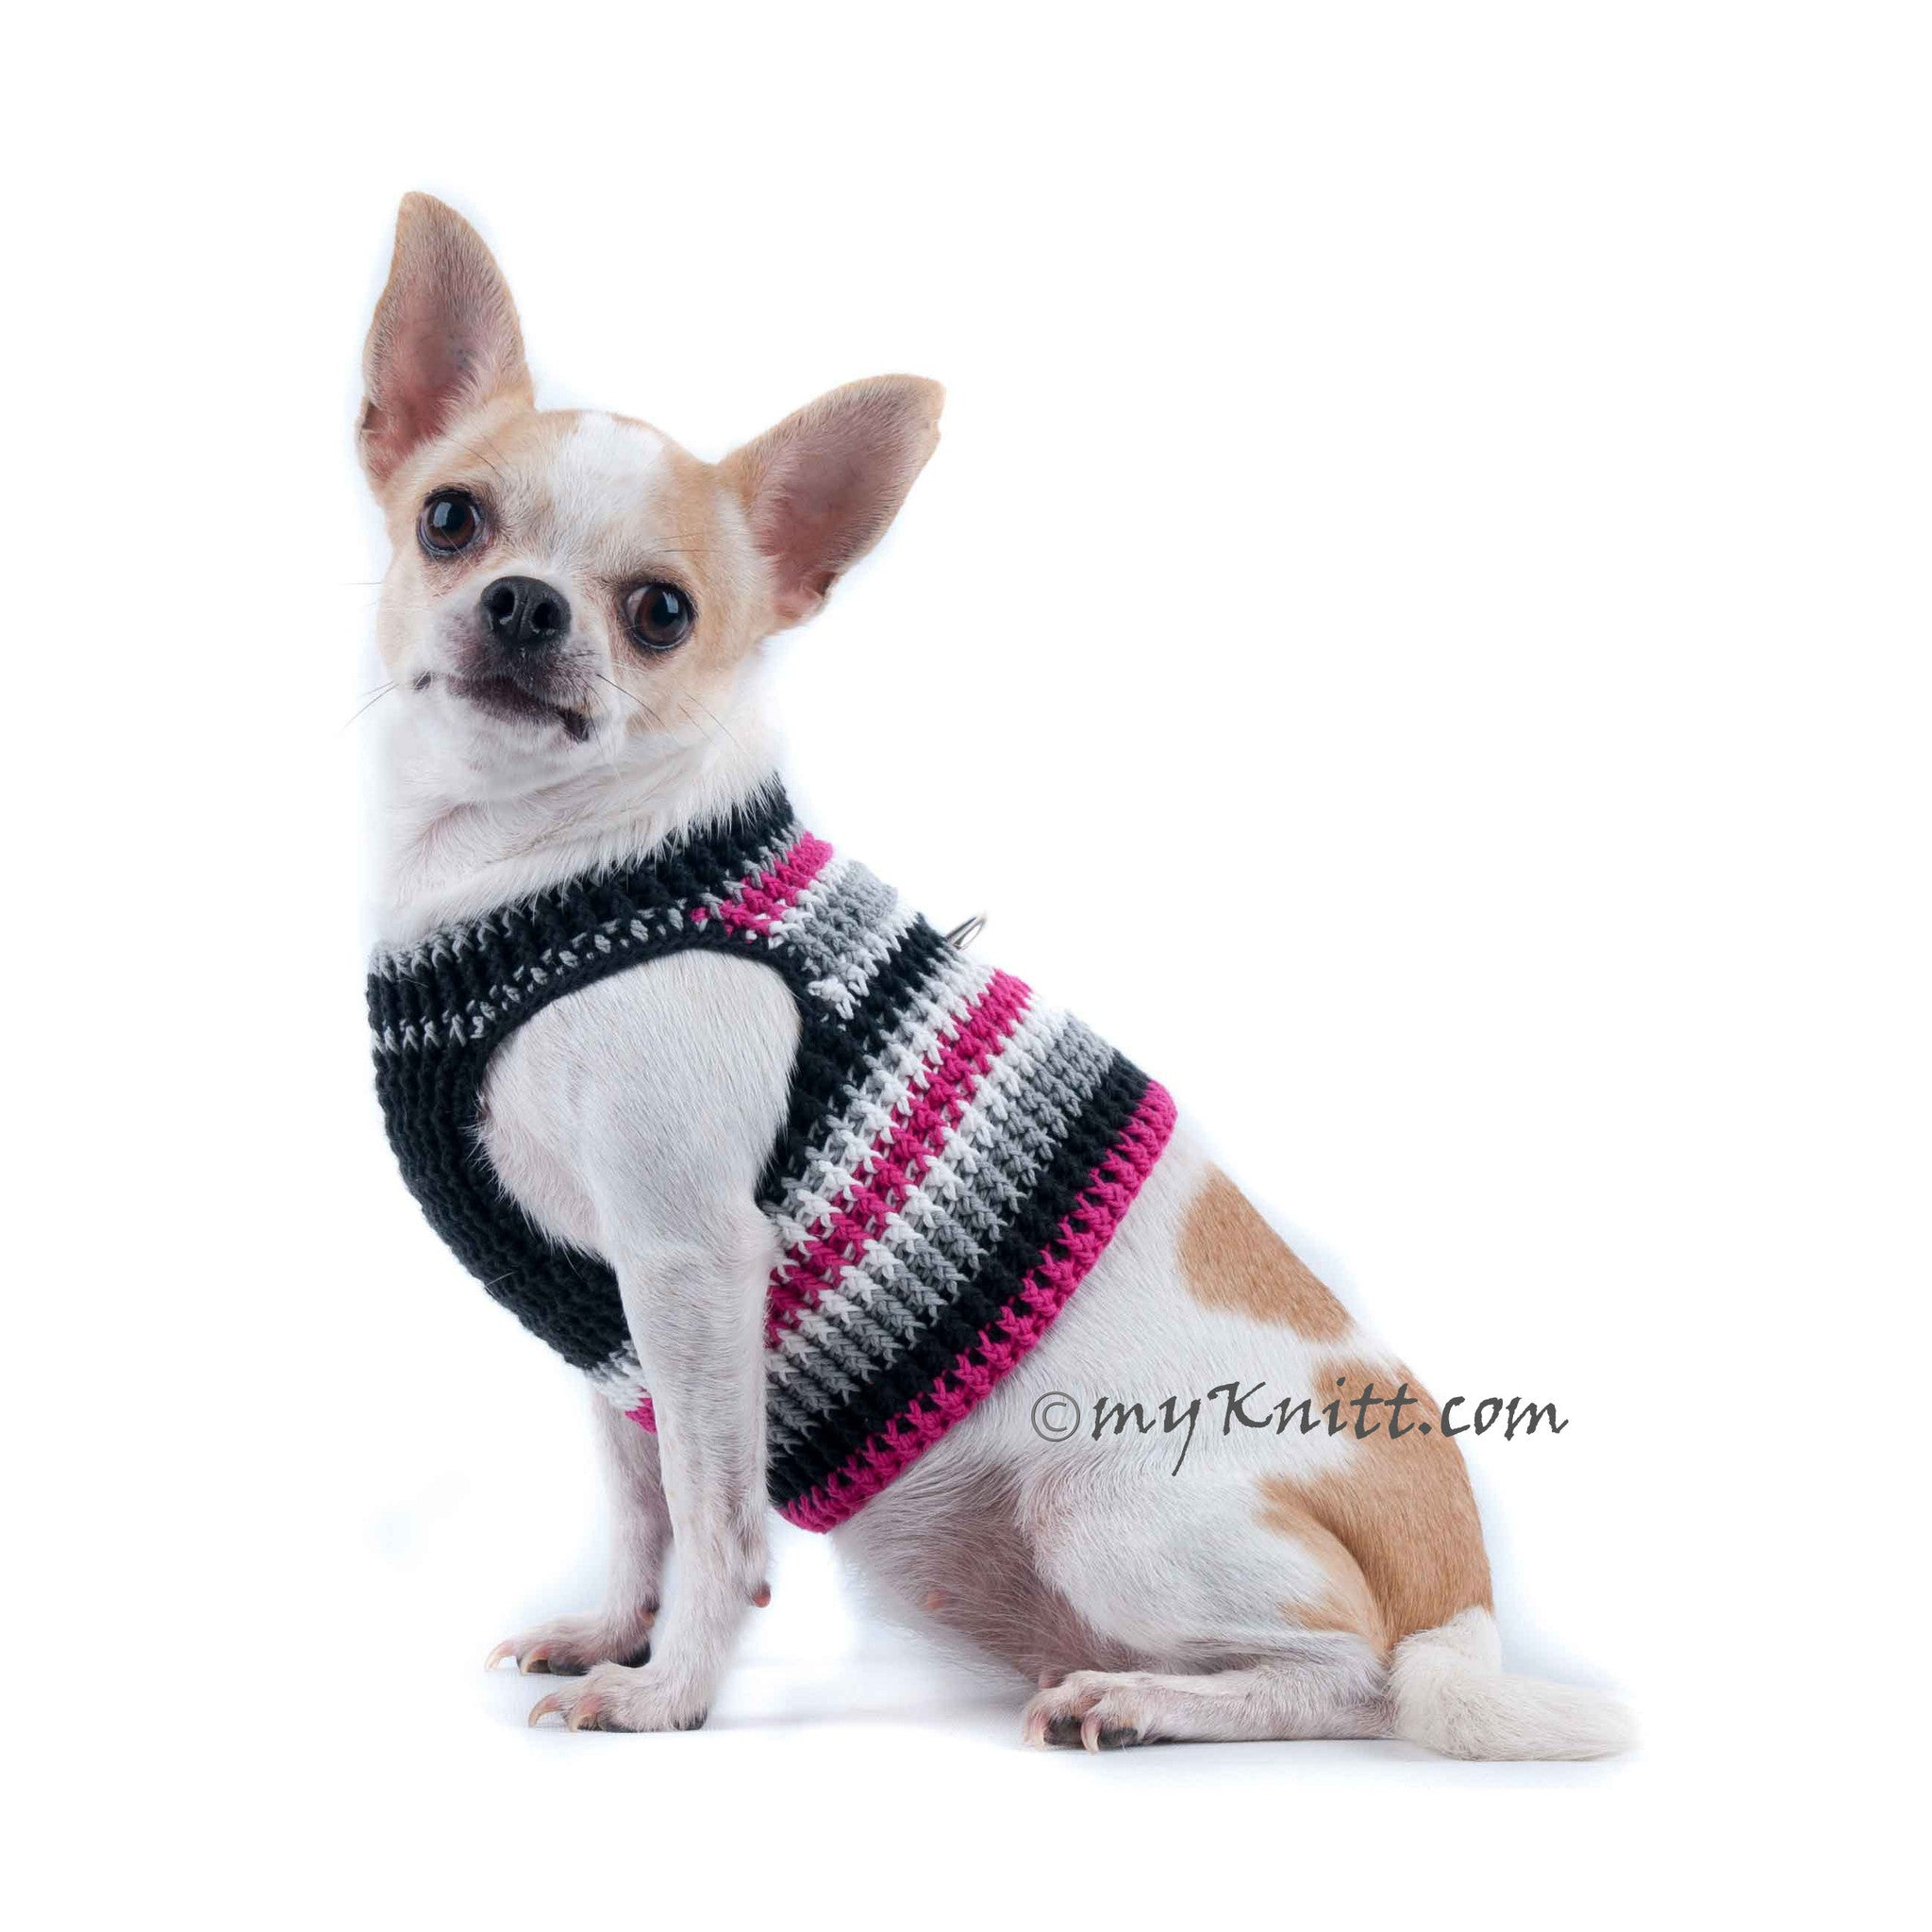 DH68_1?v=1459519417 black and hot pink dog harness vest soft cotton crochet dh68 myknitt